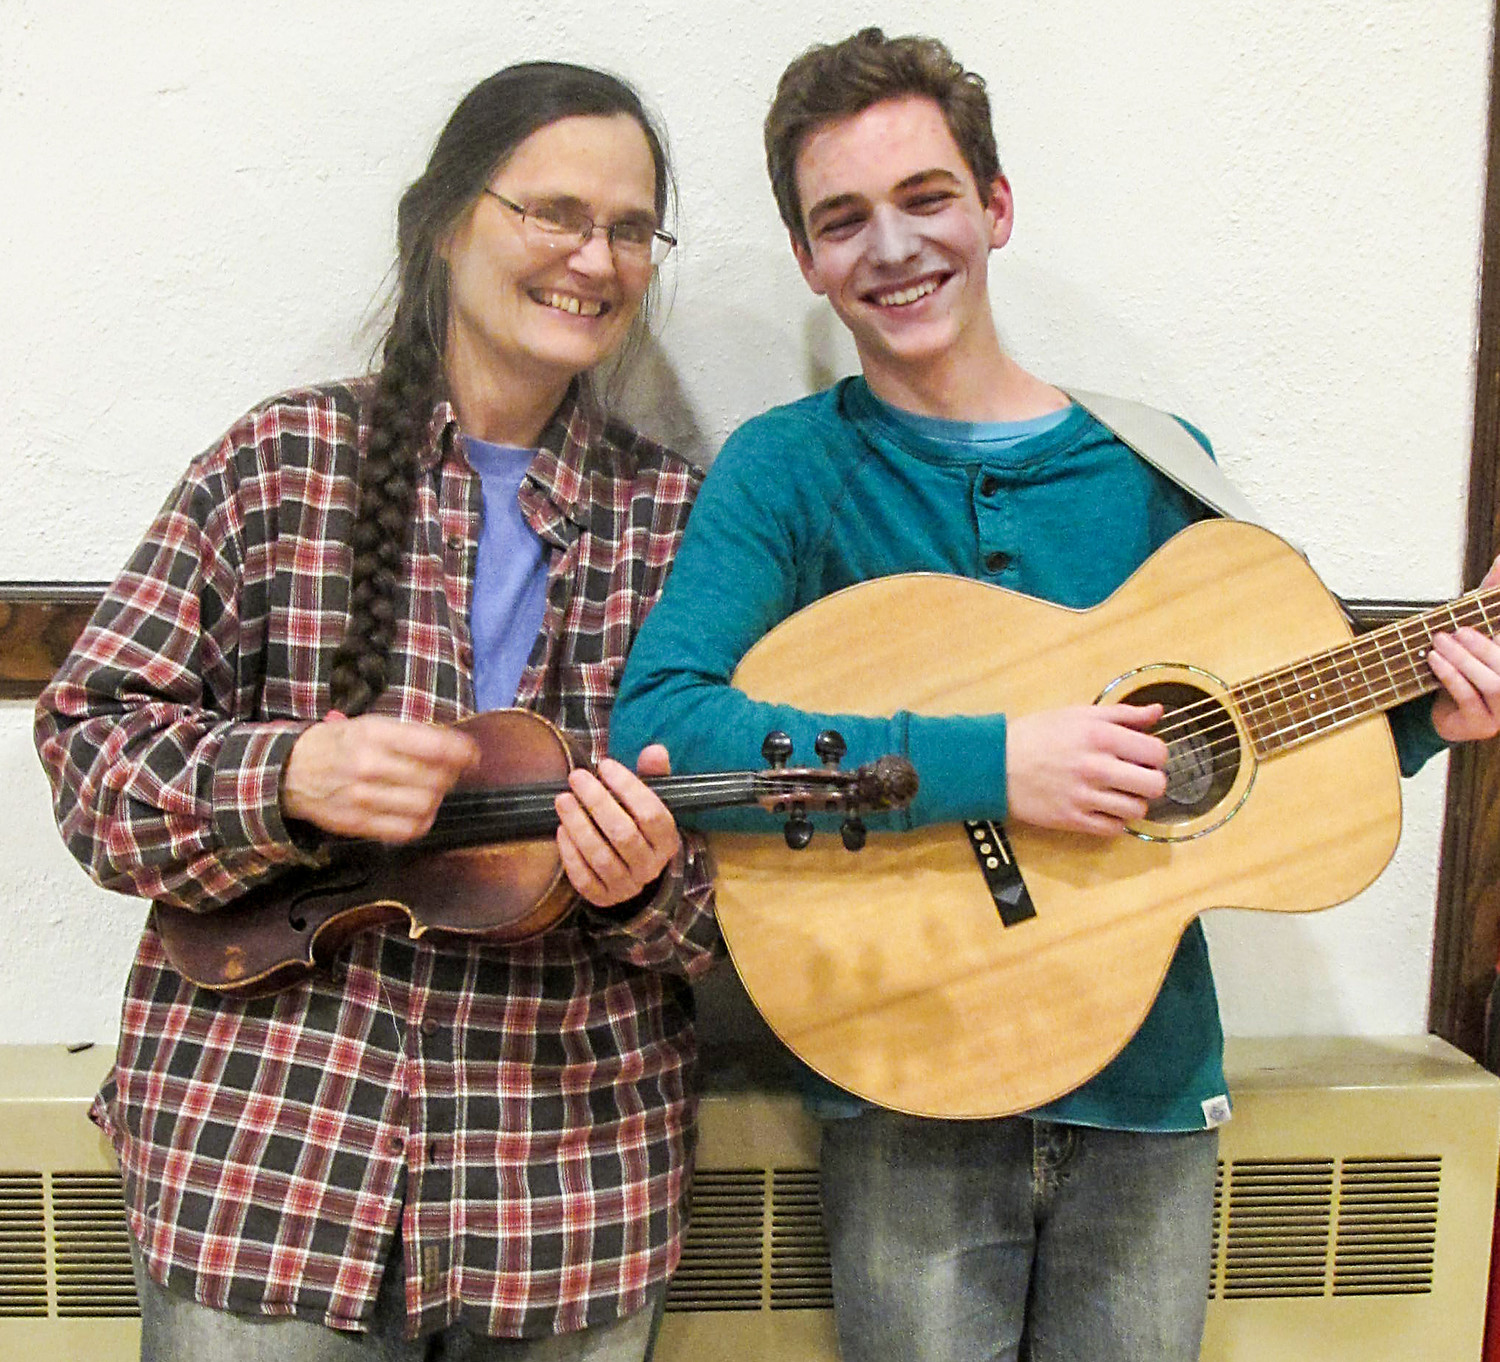 Amy Larkin and Benjamin Foss perform at the Rehoboth contra dance on Friday, February 22